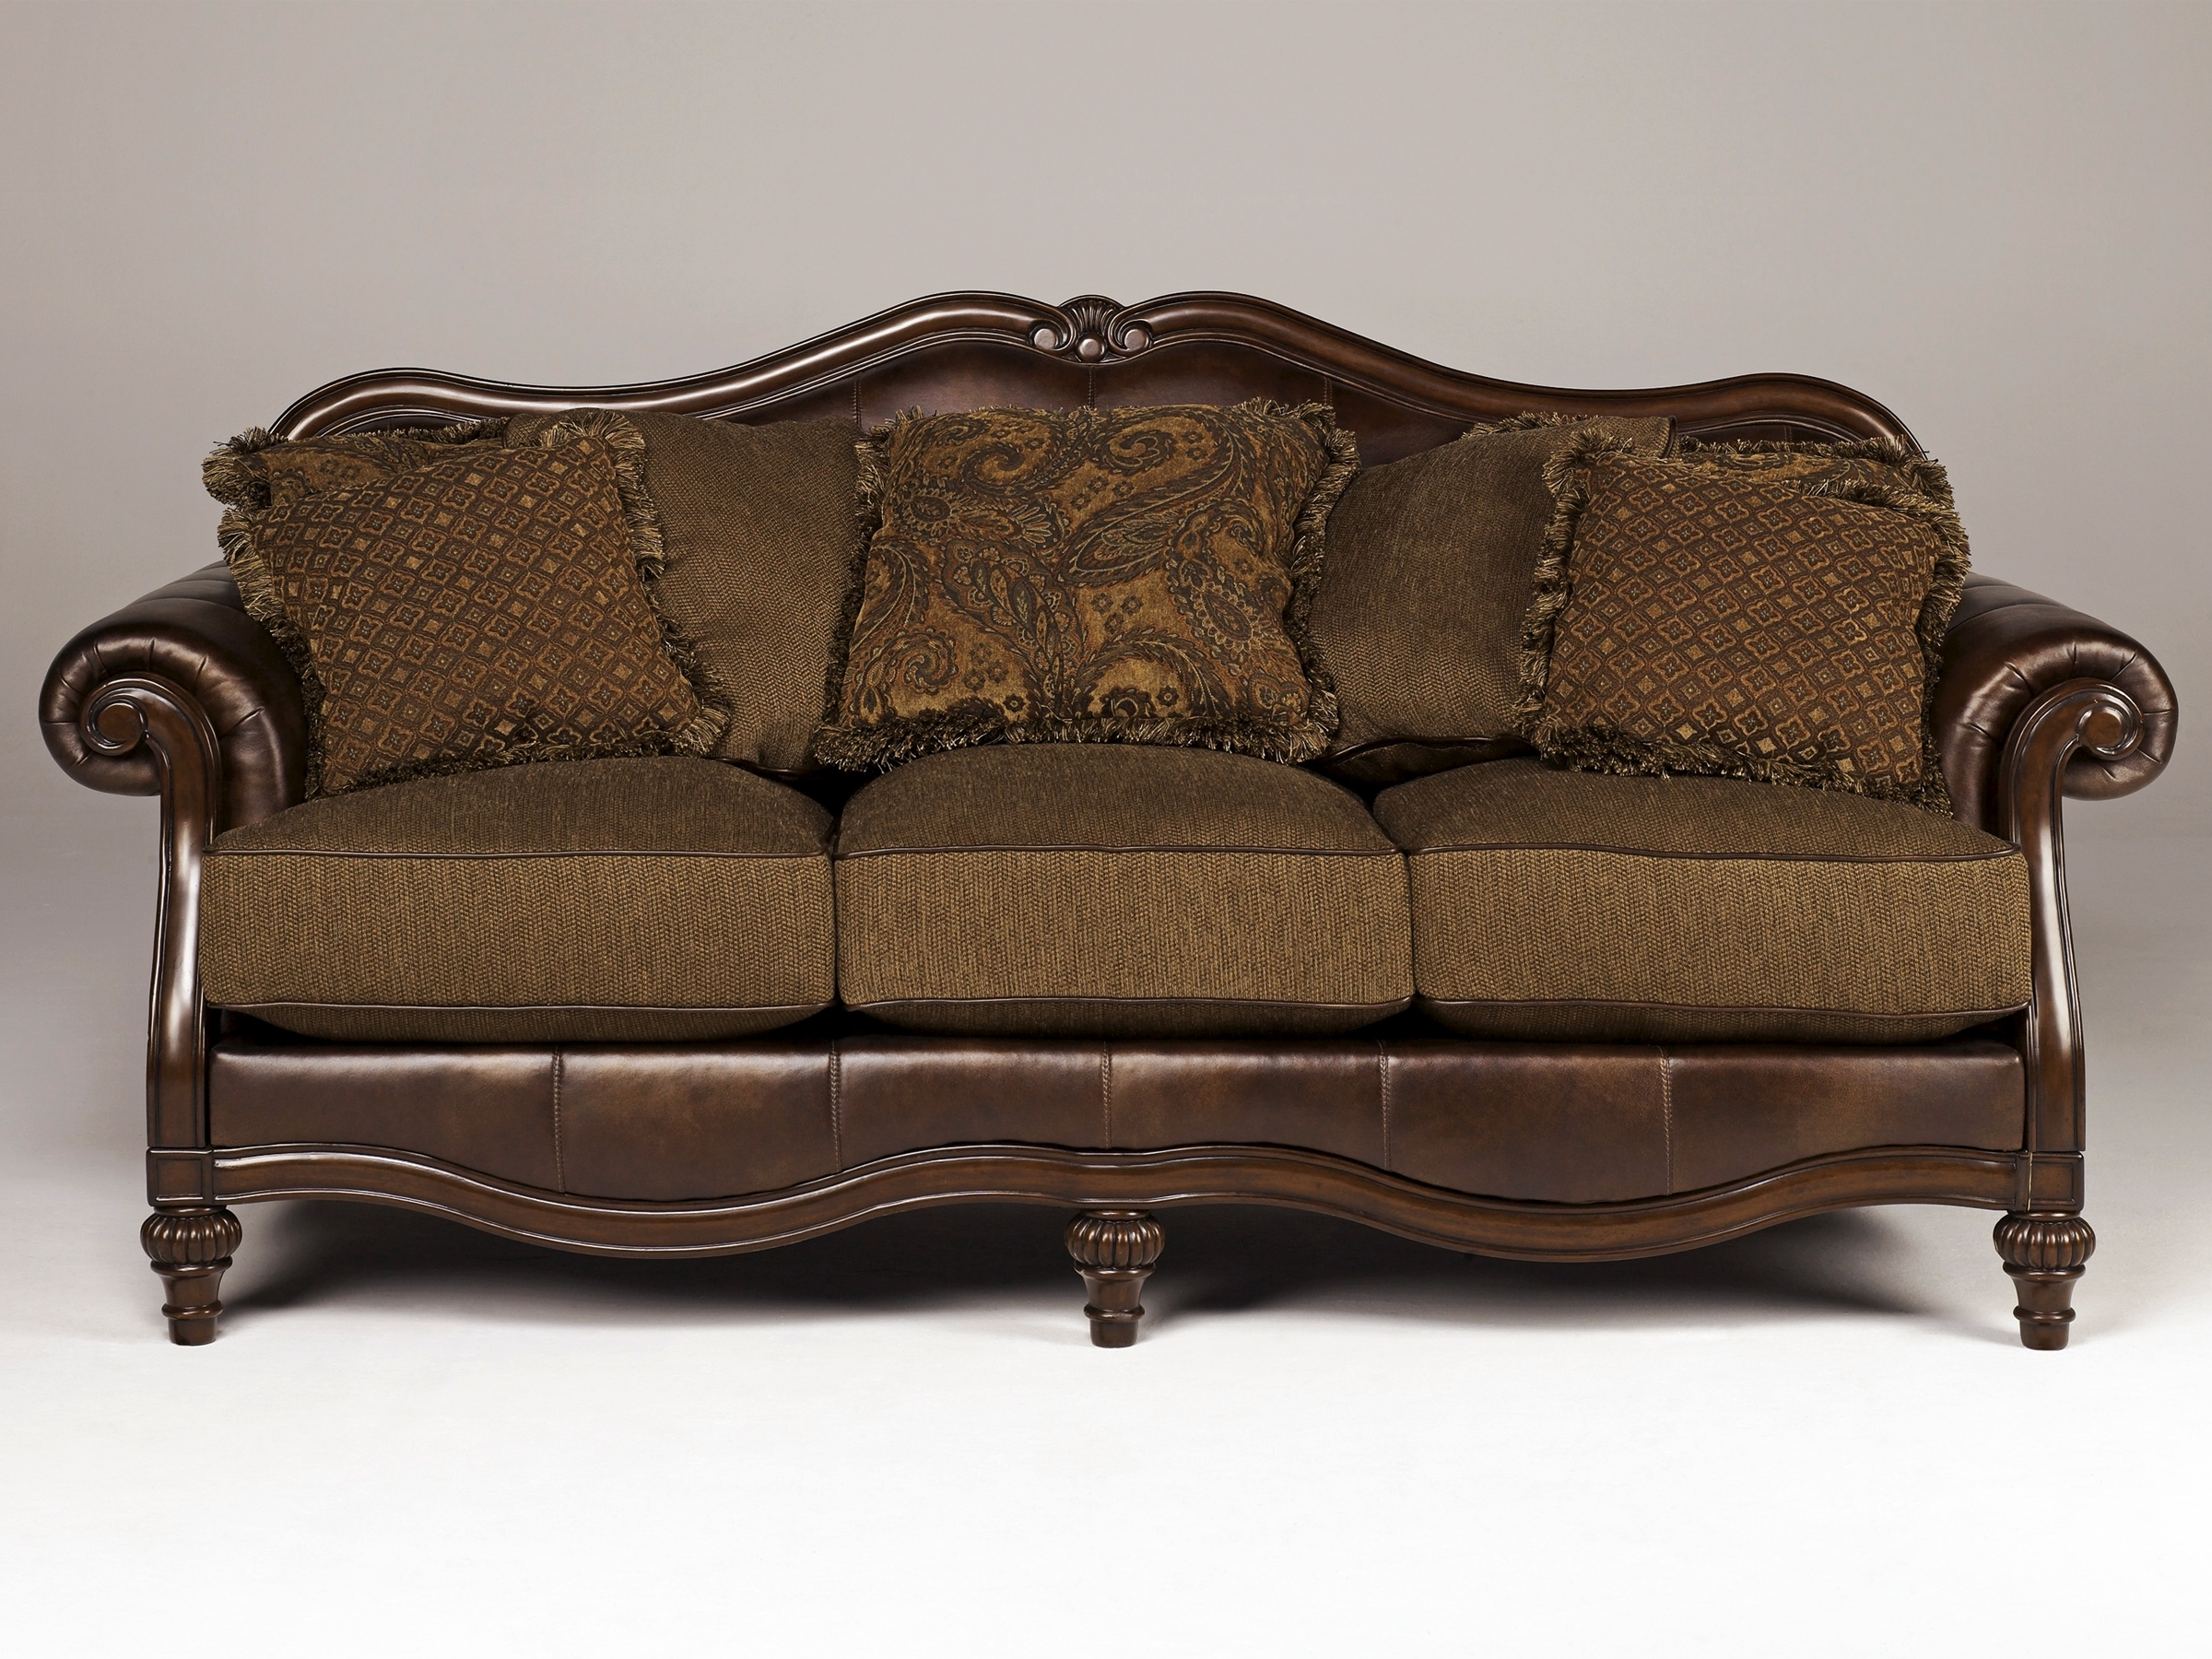 Preferred 78437 Within Antique Sofas (View 10 of 15)